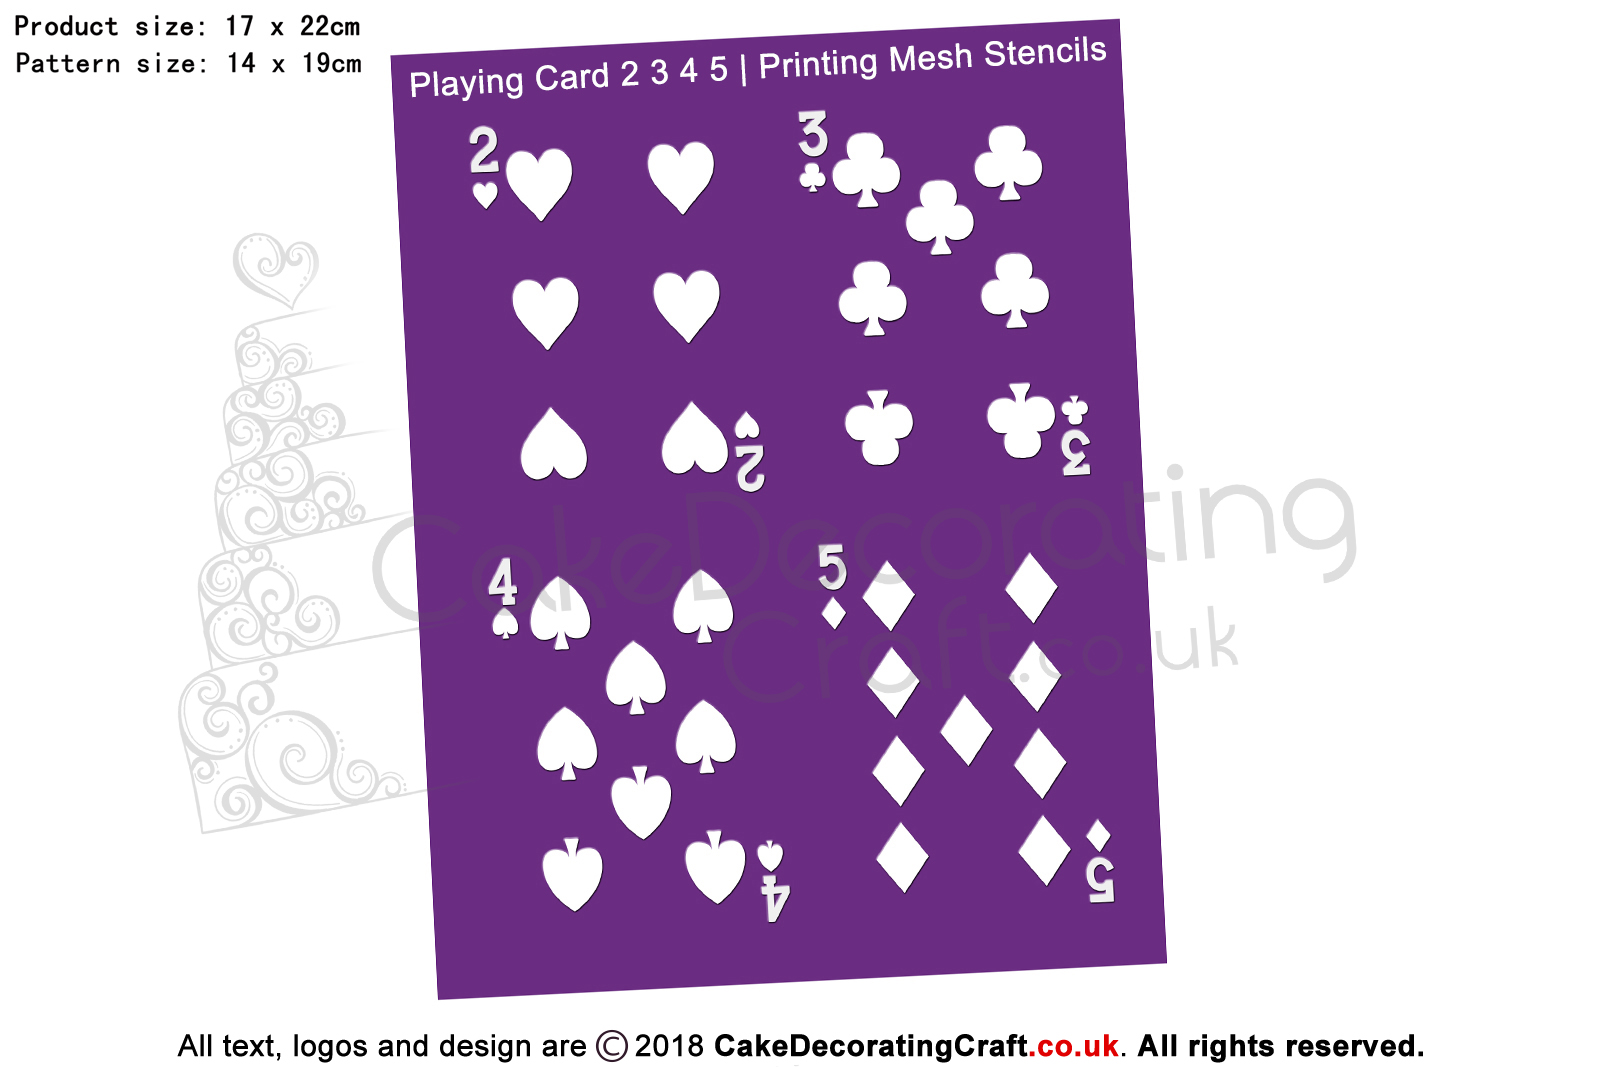 Playing Card 2 3 4 5 | Printing Mesh Stencils | Edible Ink